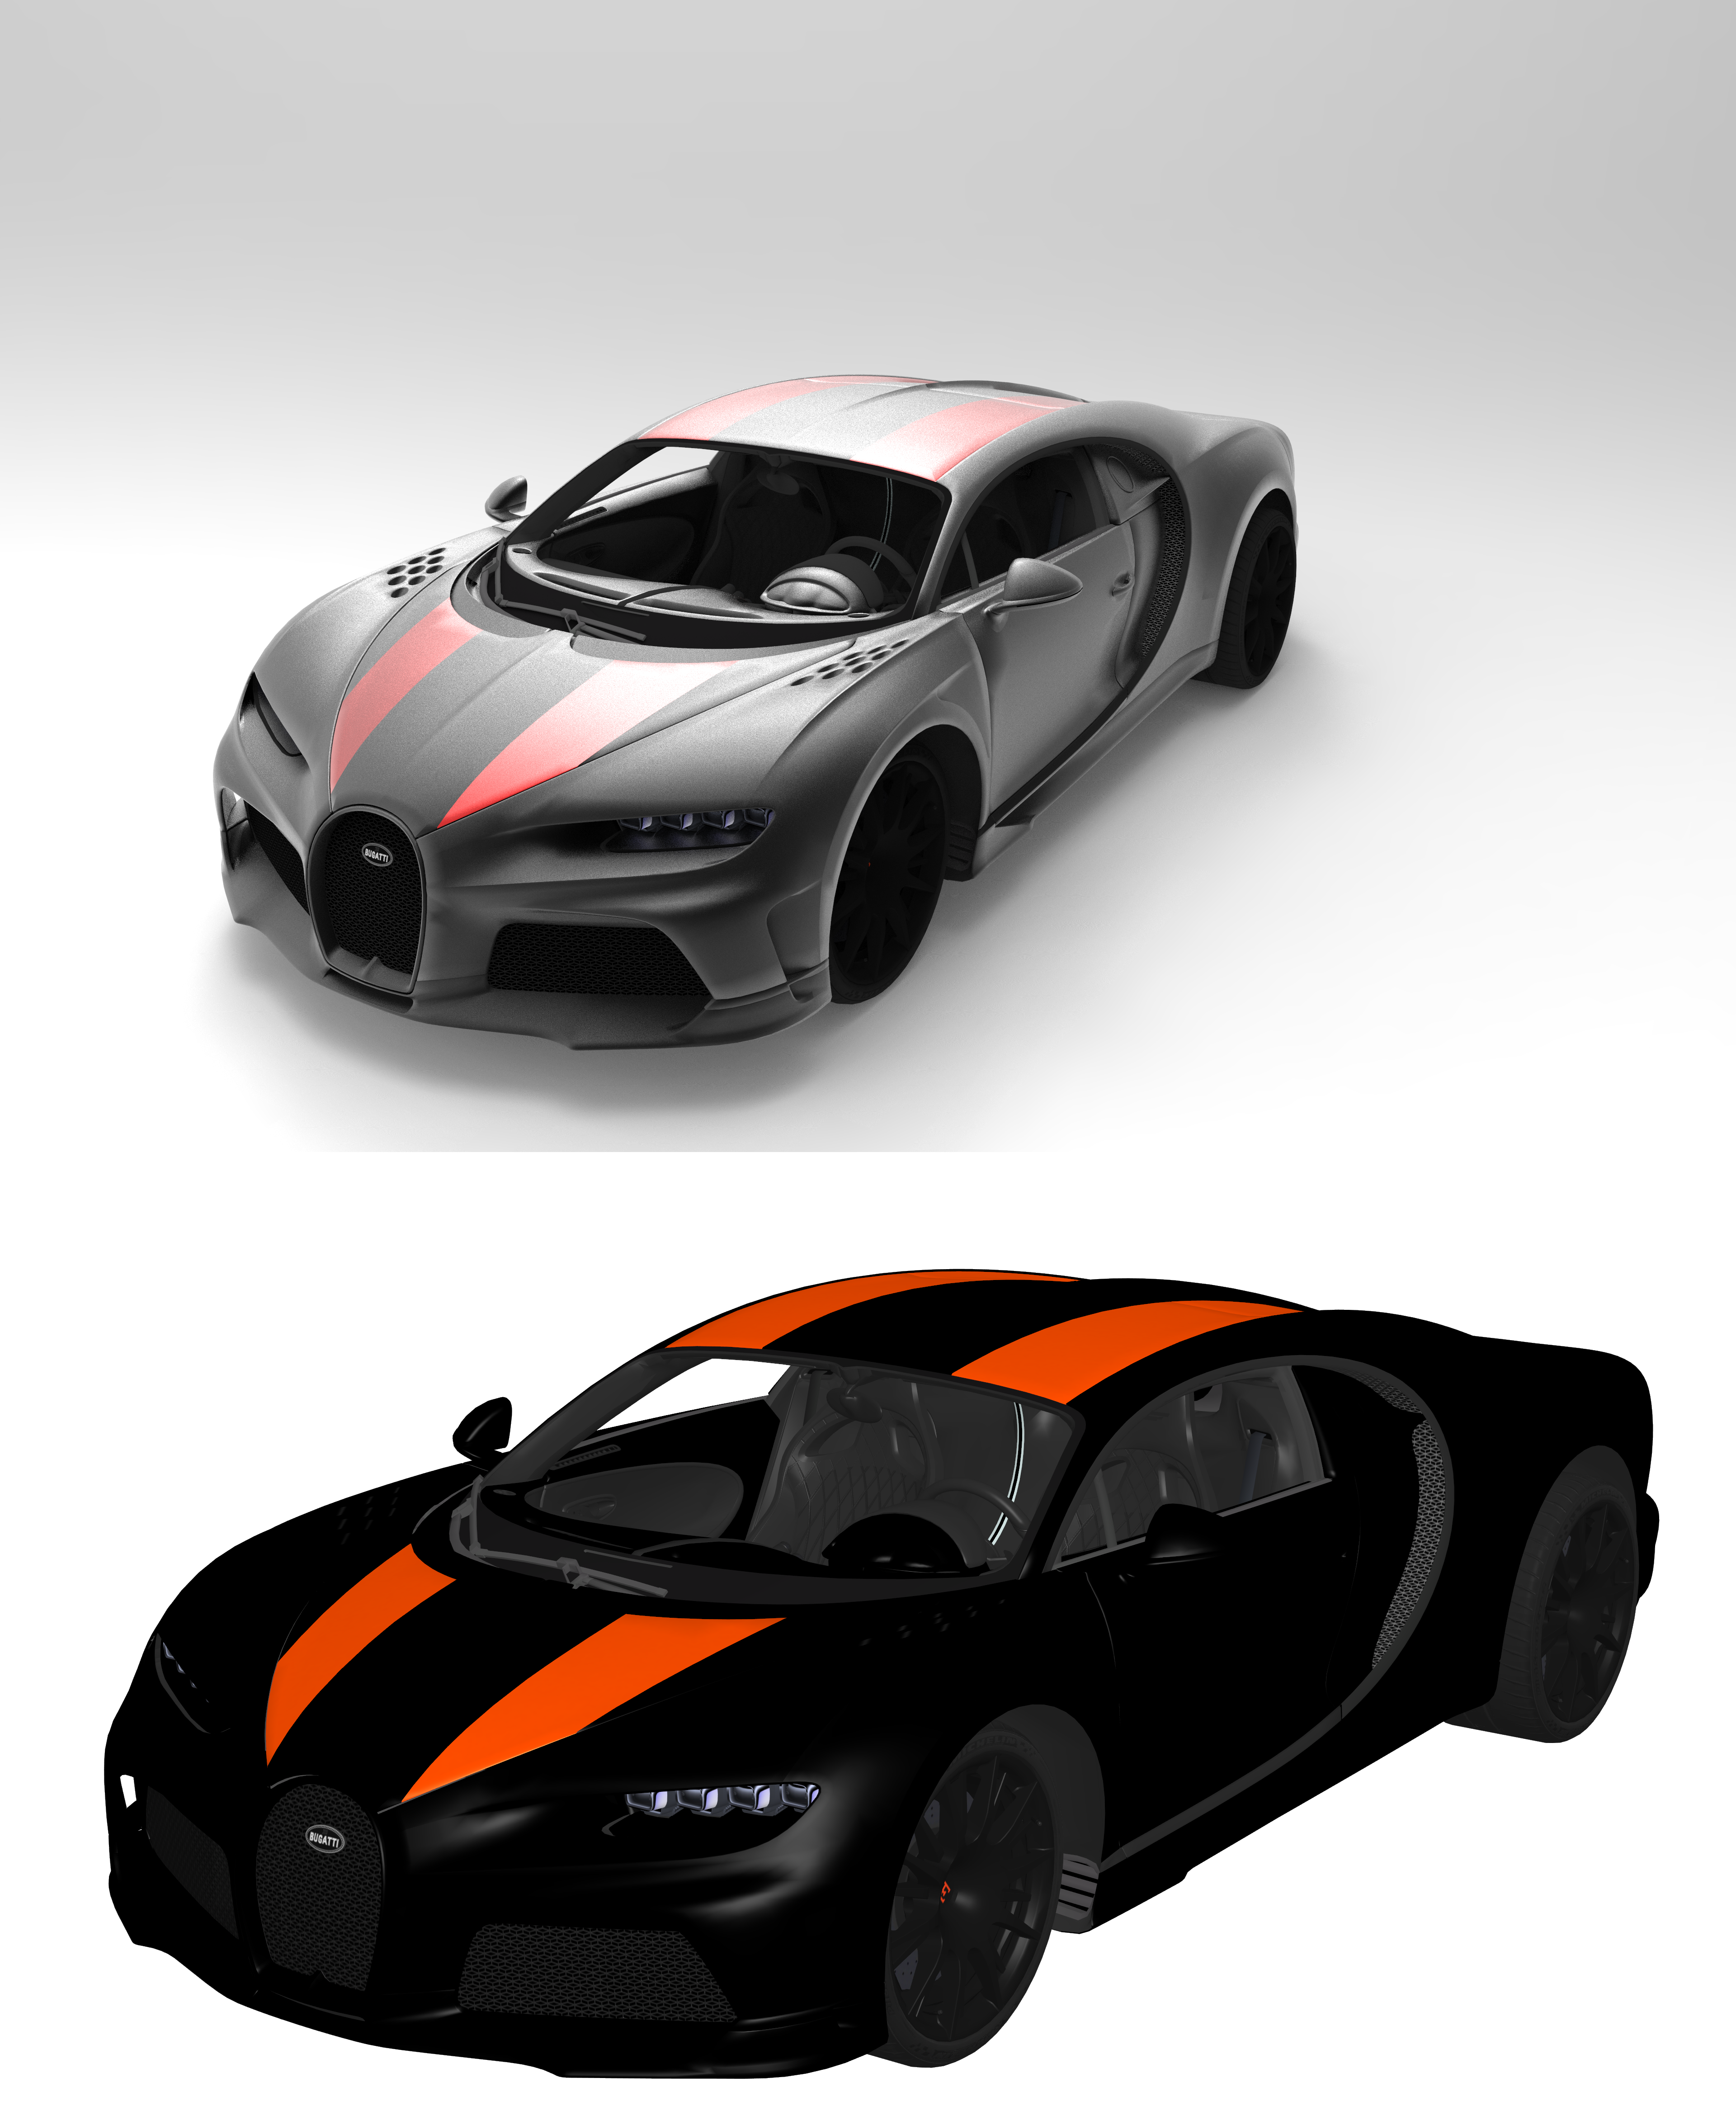 Bugatti Chiron Supersport Wre 2020 By Oo Fil Oo On Deviantart